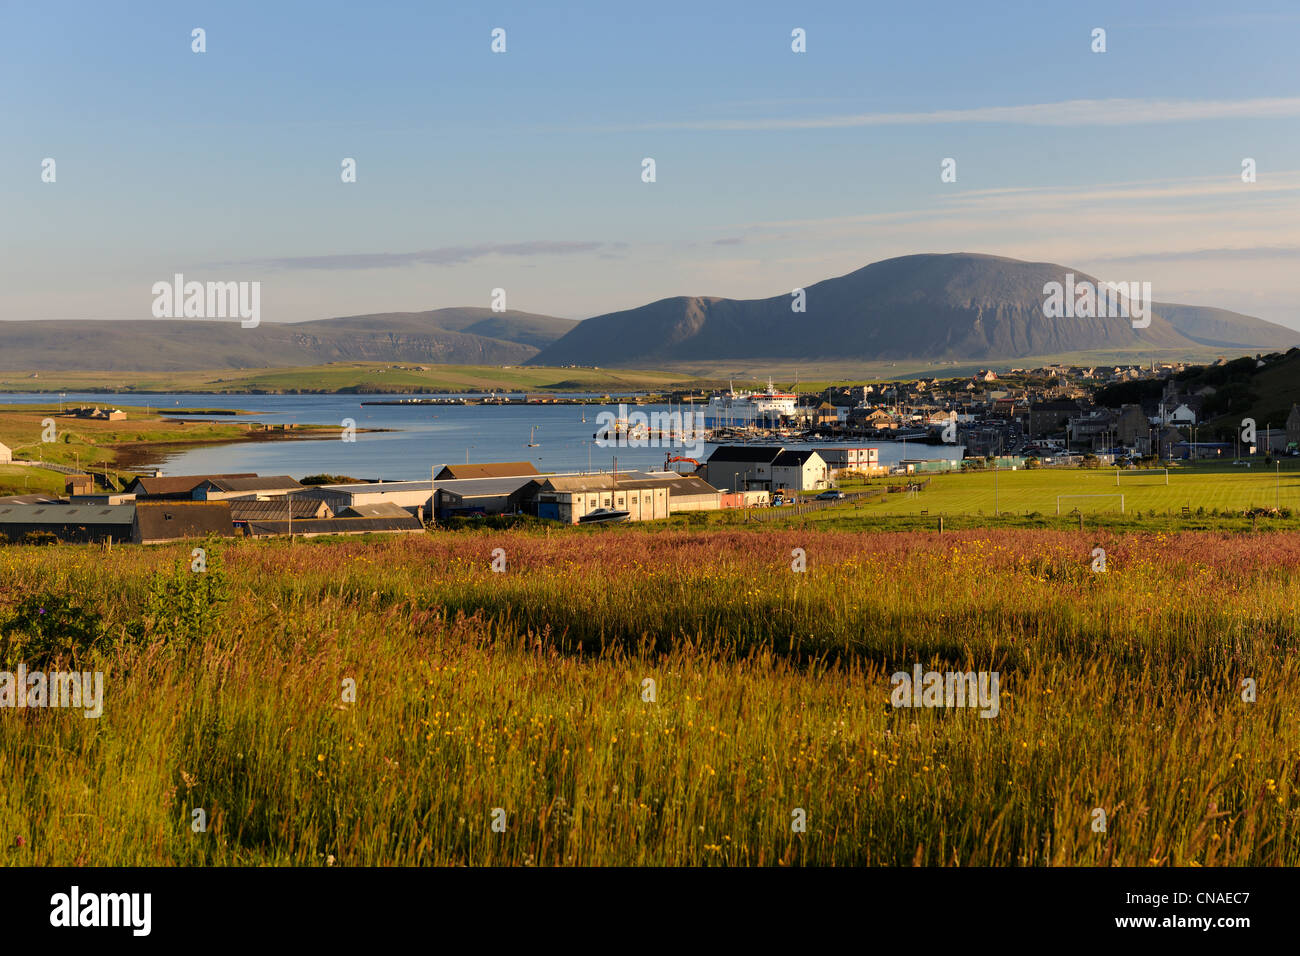 United Kingdom, Scotland, Orkney Islands, Mainland Island, Stromness Harbour in front of Ward Hill on Hoy that is - Stock Image